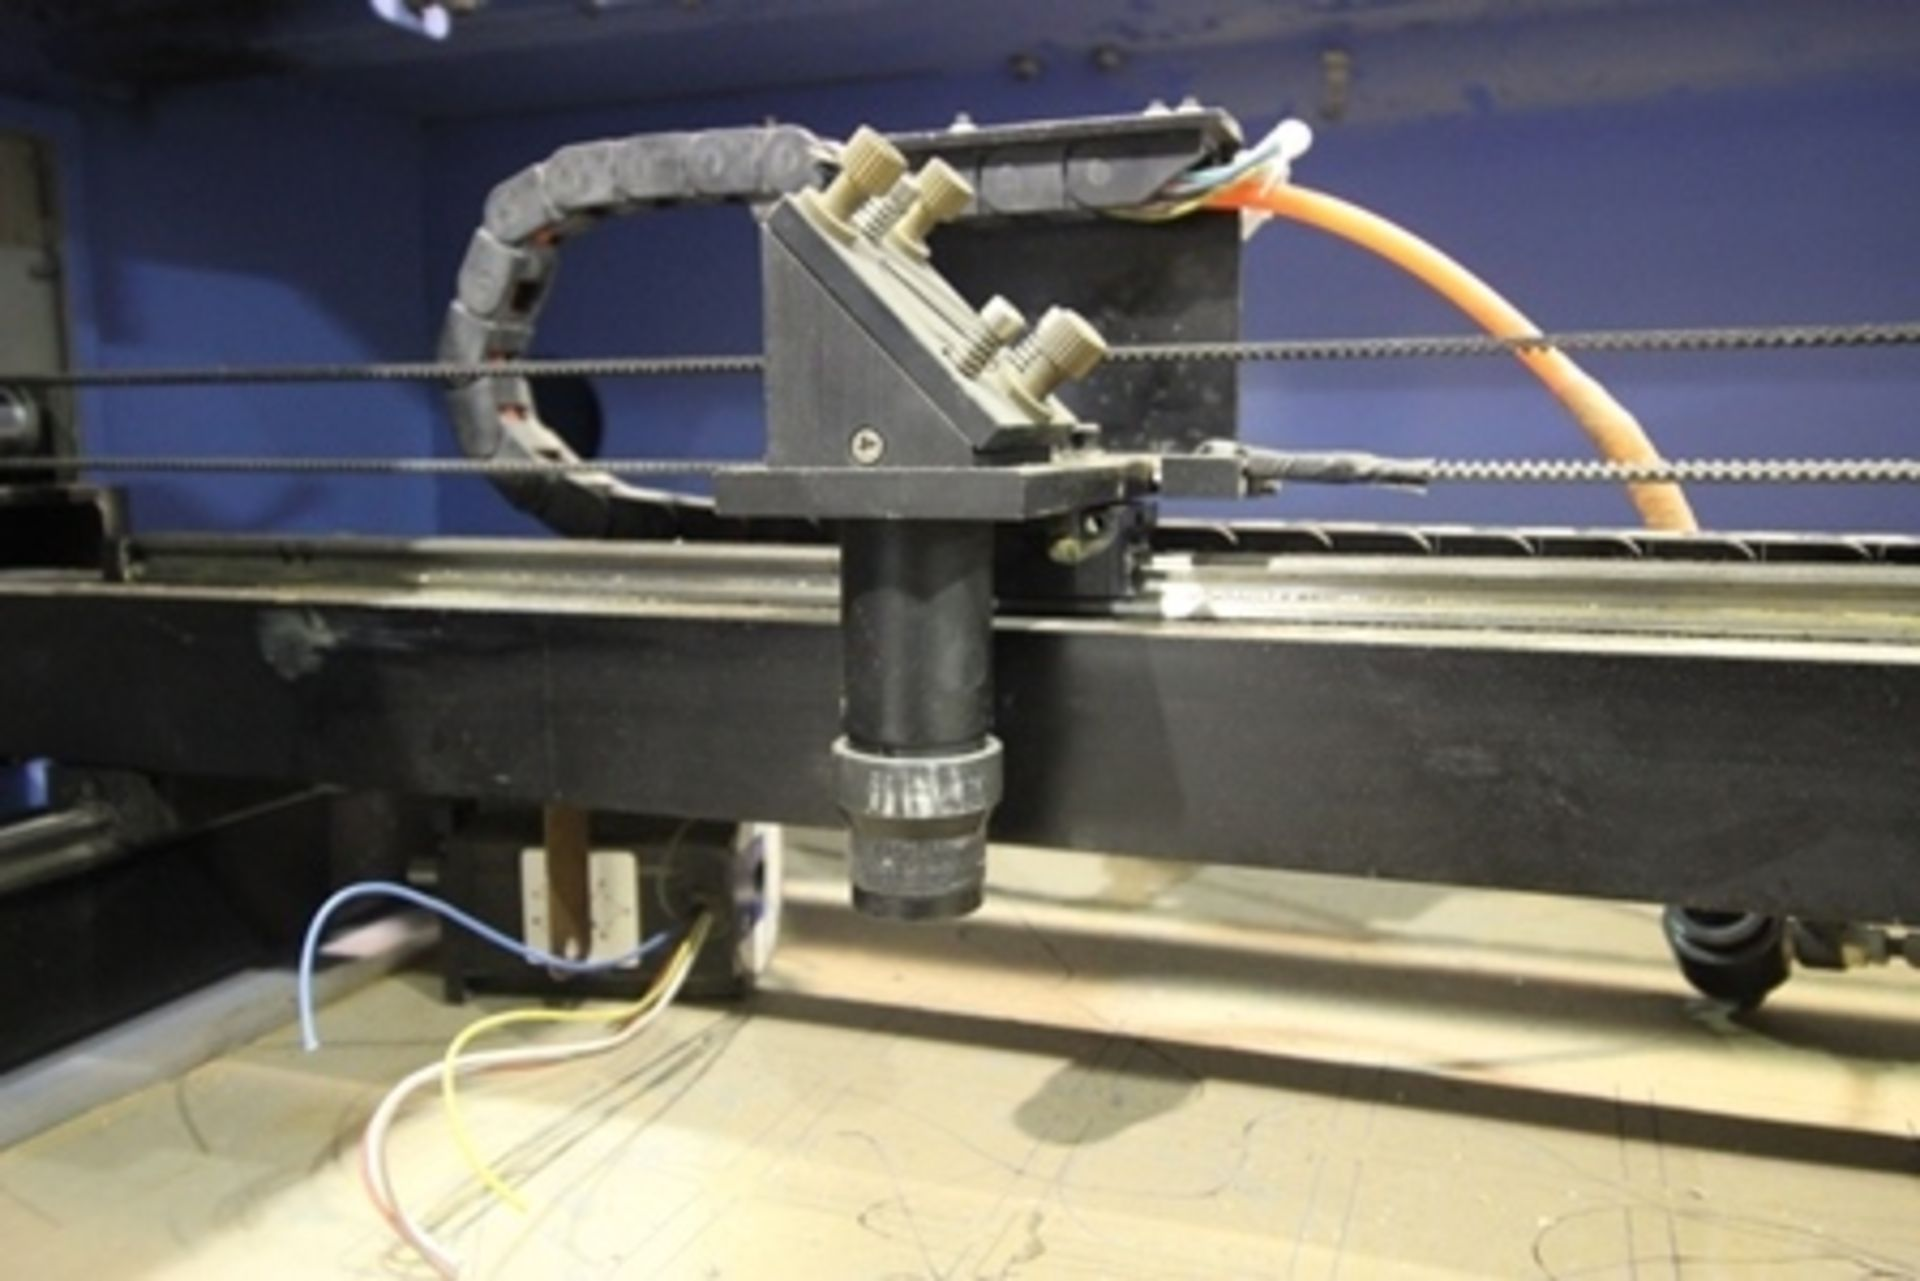 Lot 19 - 2016 Phillican CO2 laser engraver and cutting machine, model 6090. Laser power: 80w, 2Kw.